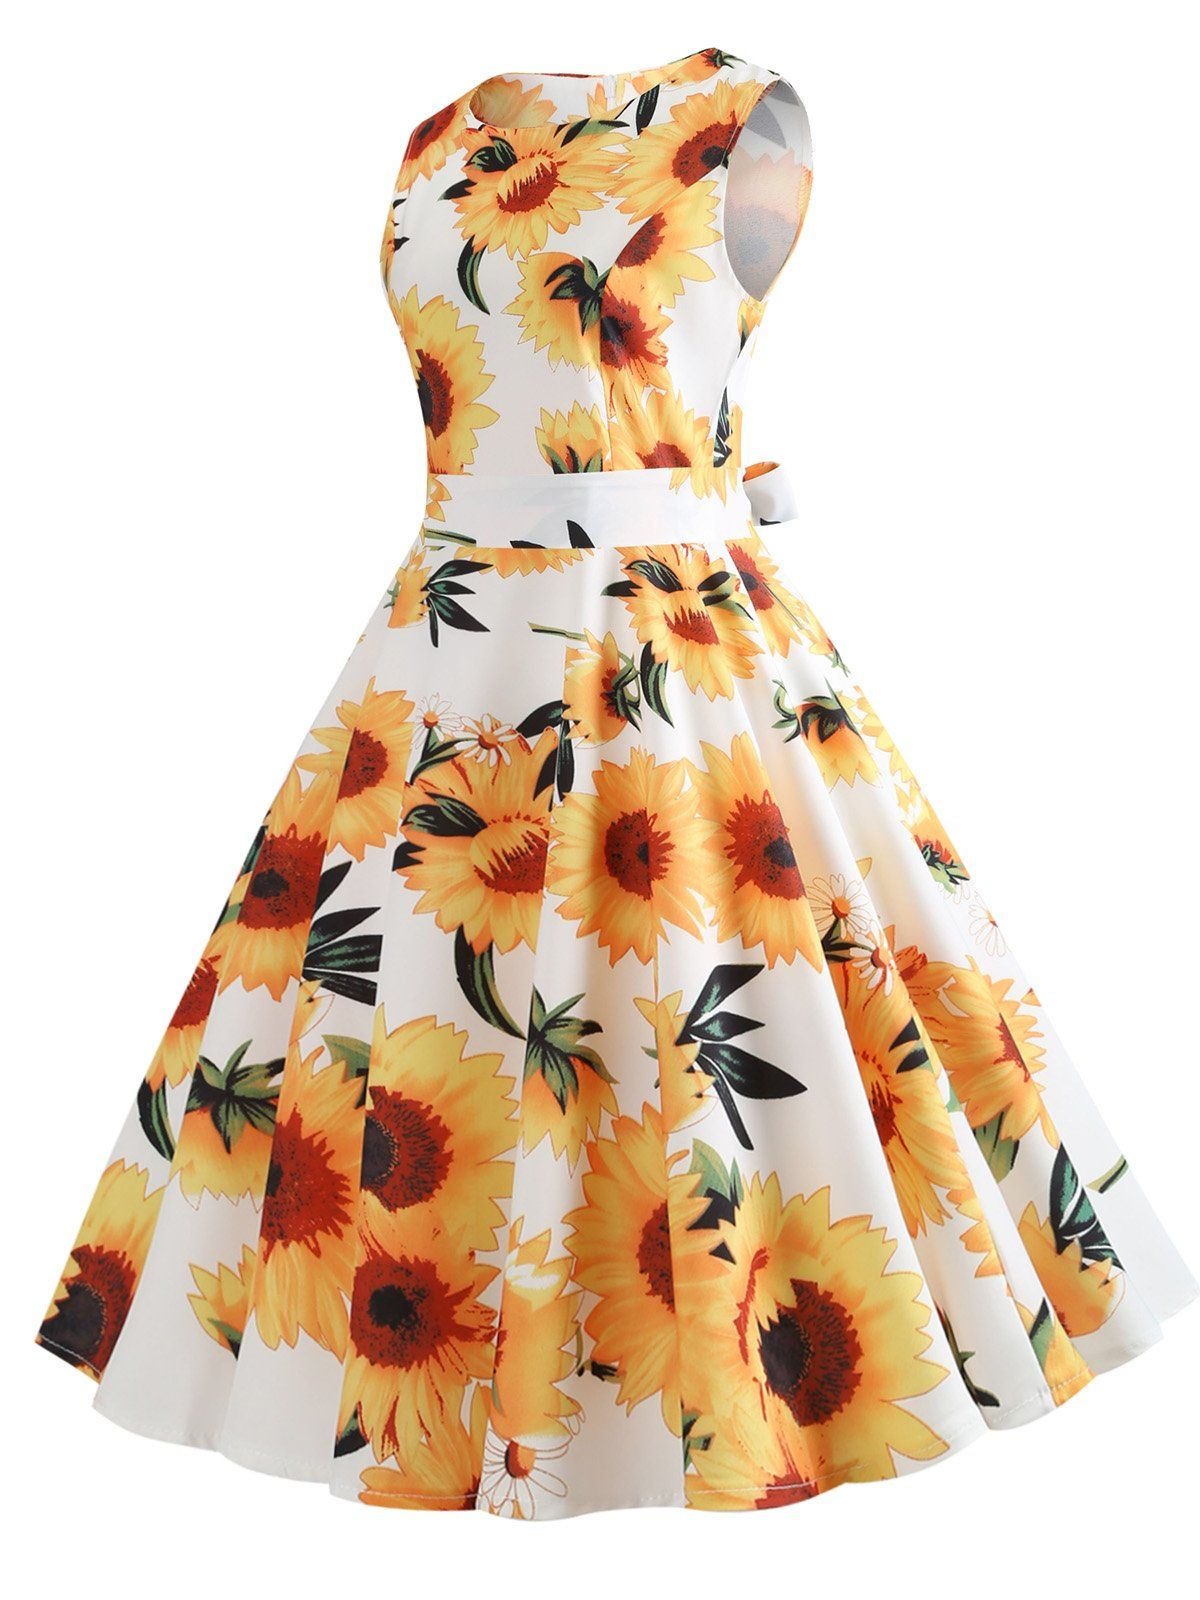 8b24288ce208 Yellow And White 1950s Sunflowers Dress – Retro Stage - Chic Vintage Dresses  and Accessories